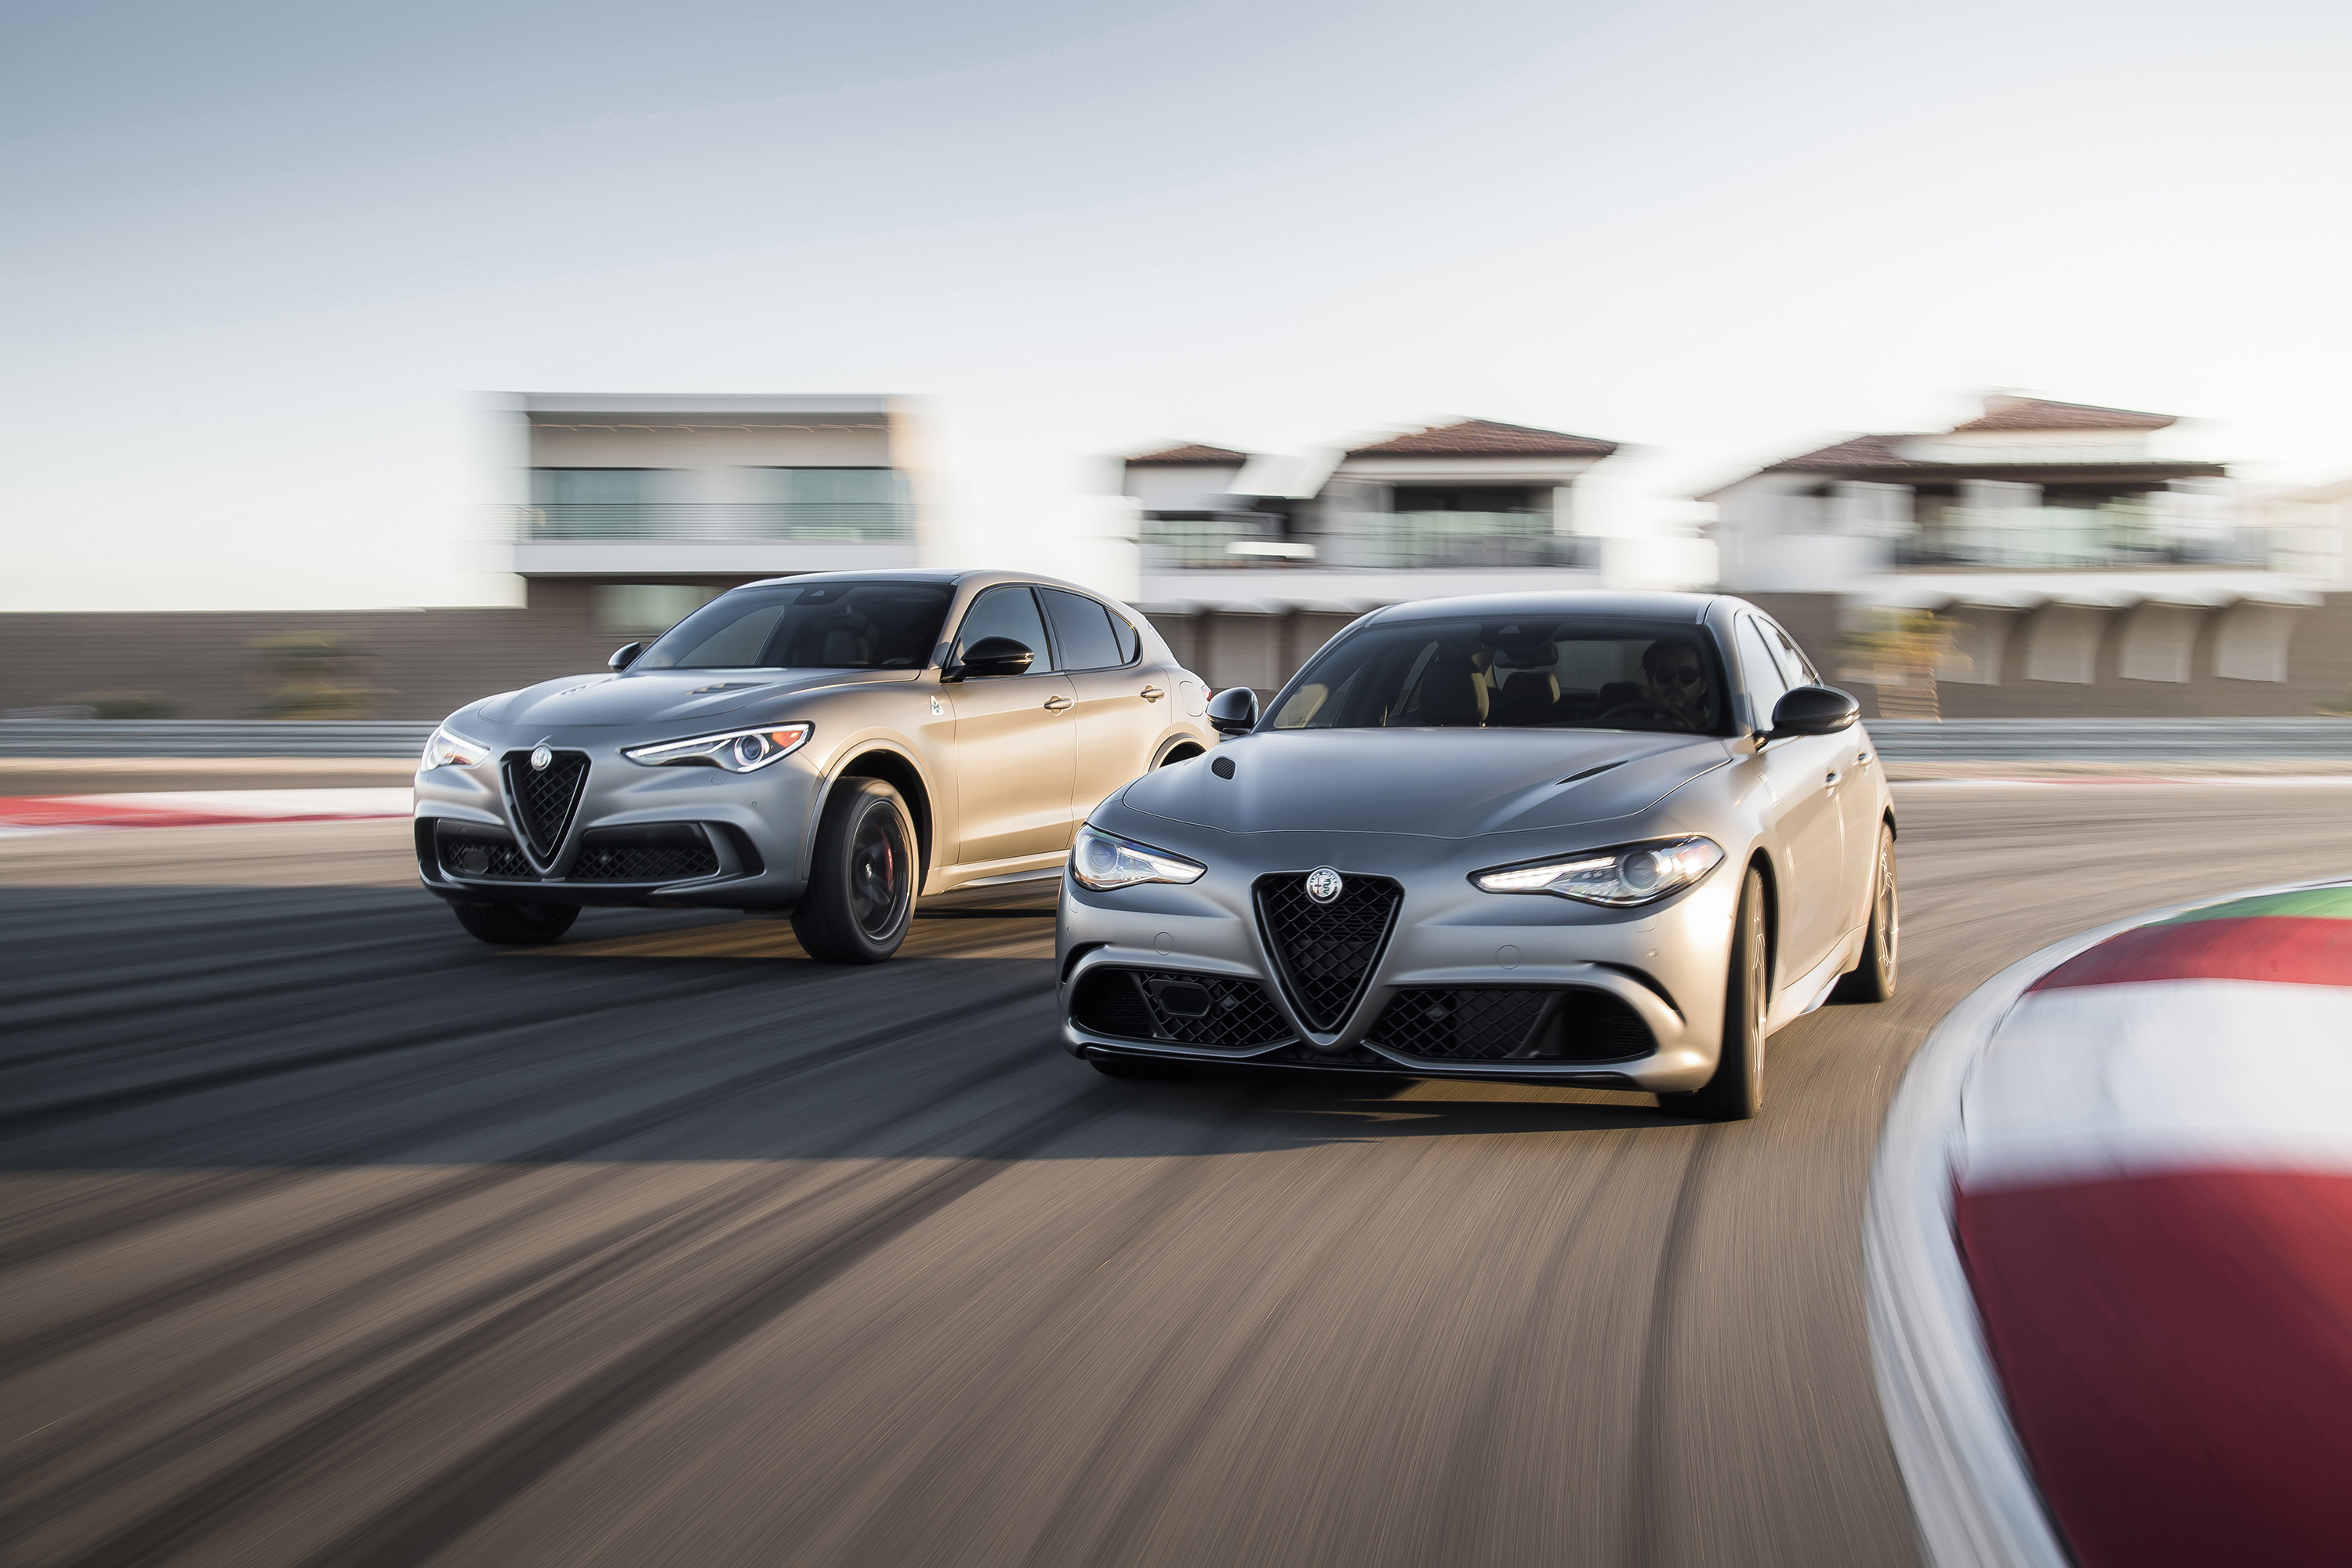 2019 Alfa Romeo Stelvio (Left) and Giulia (Right) Quadrifoglio NRING